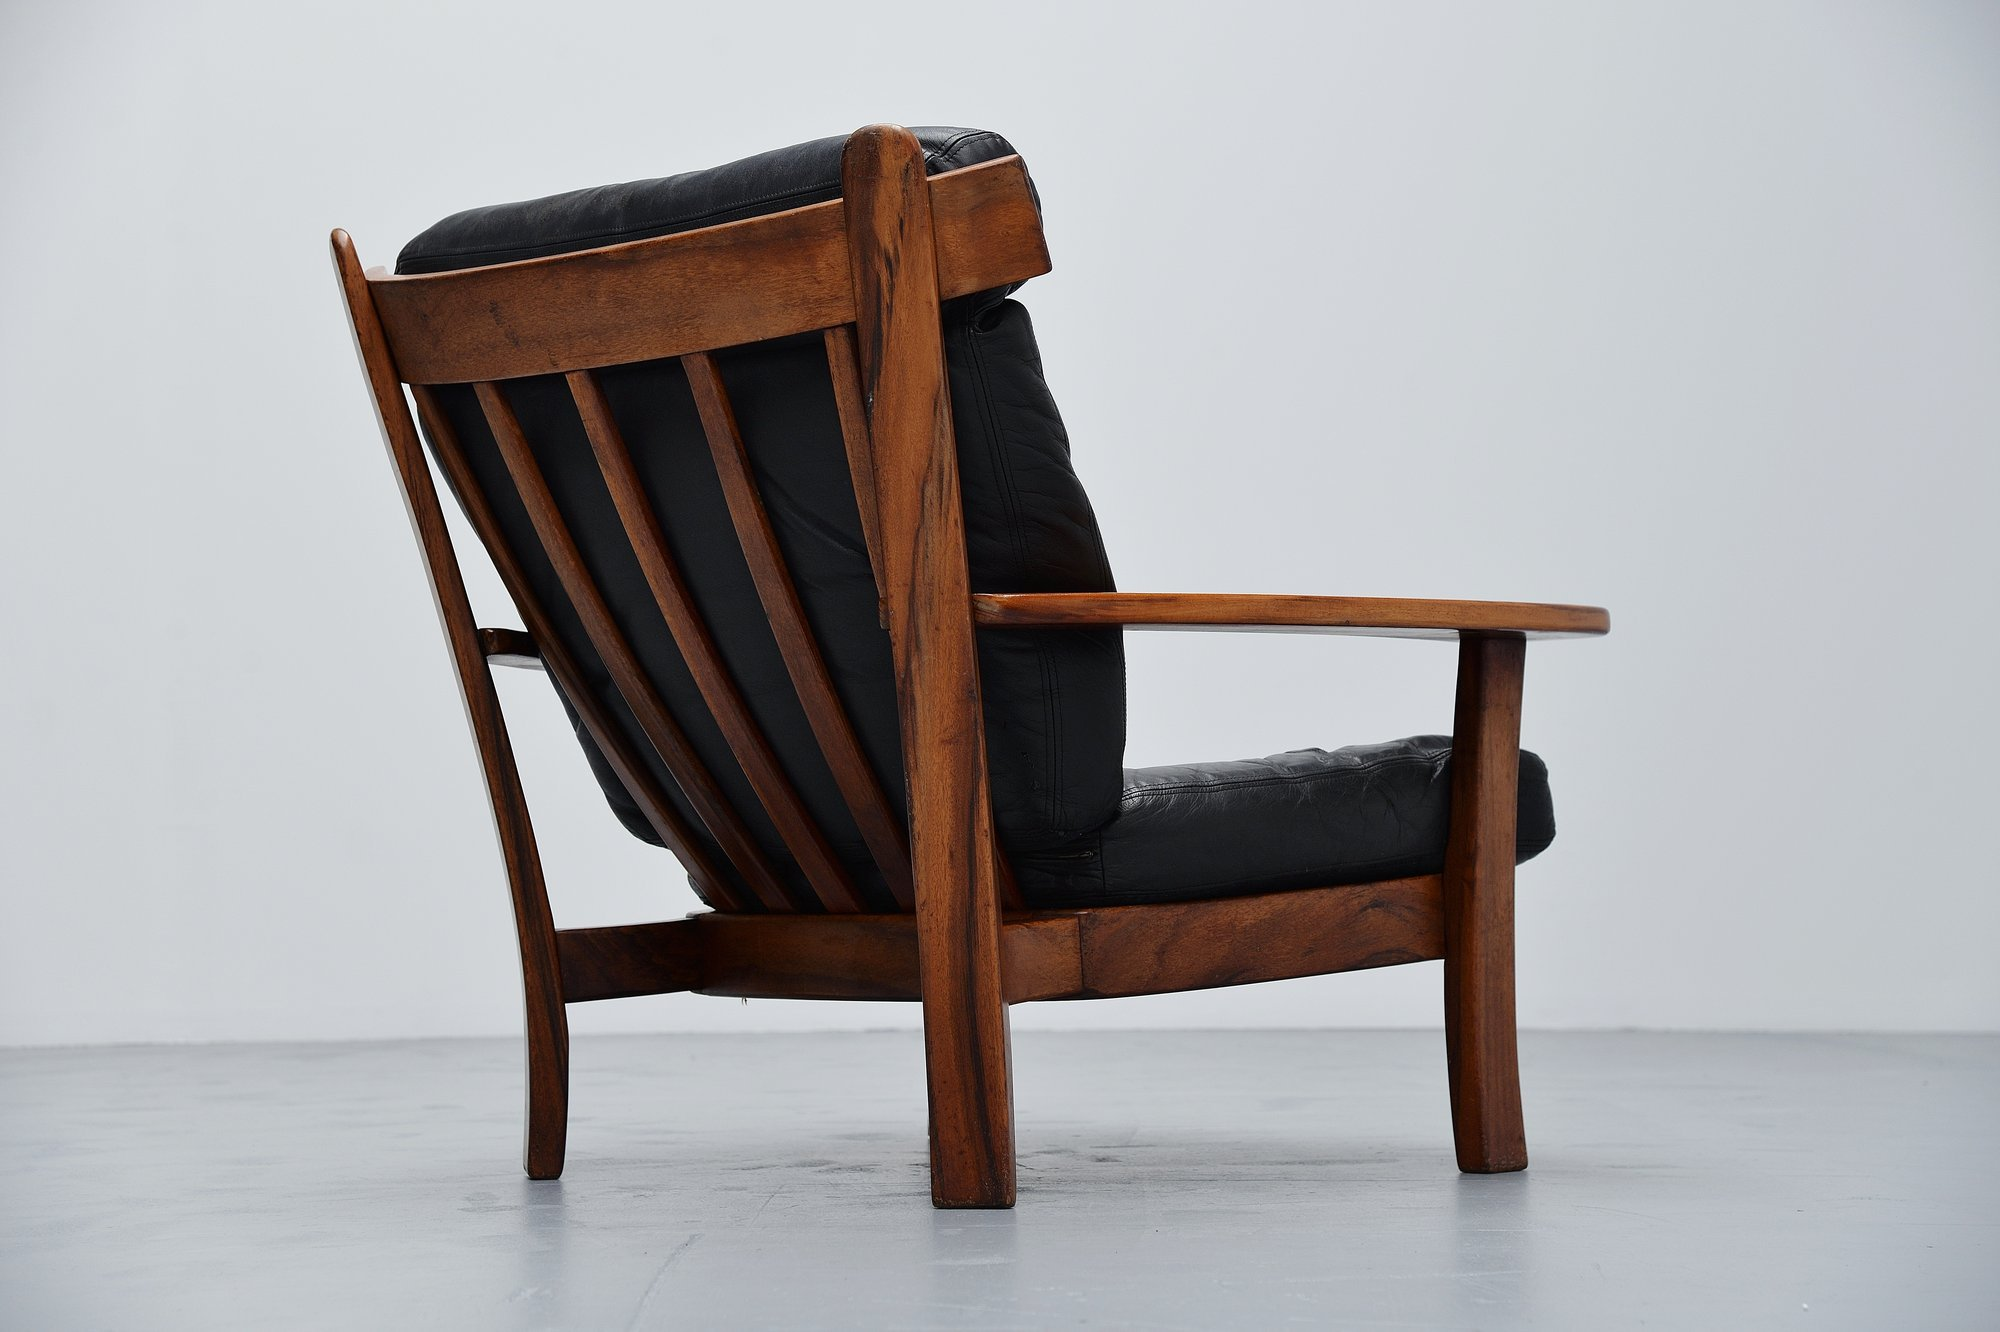 Superb Brazilian Ox Lounge Chair In Rosewood And Leather 1960 Ibusinesslaw Wood Chair Design Ideas Ibusinesslaworg